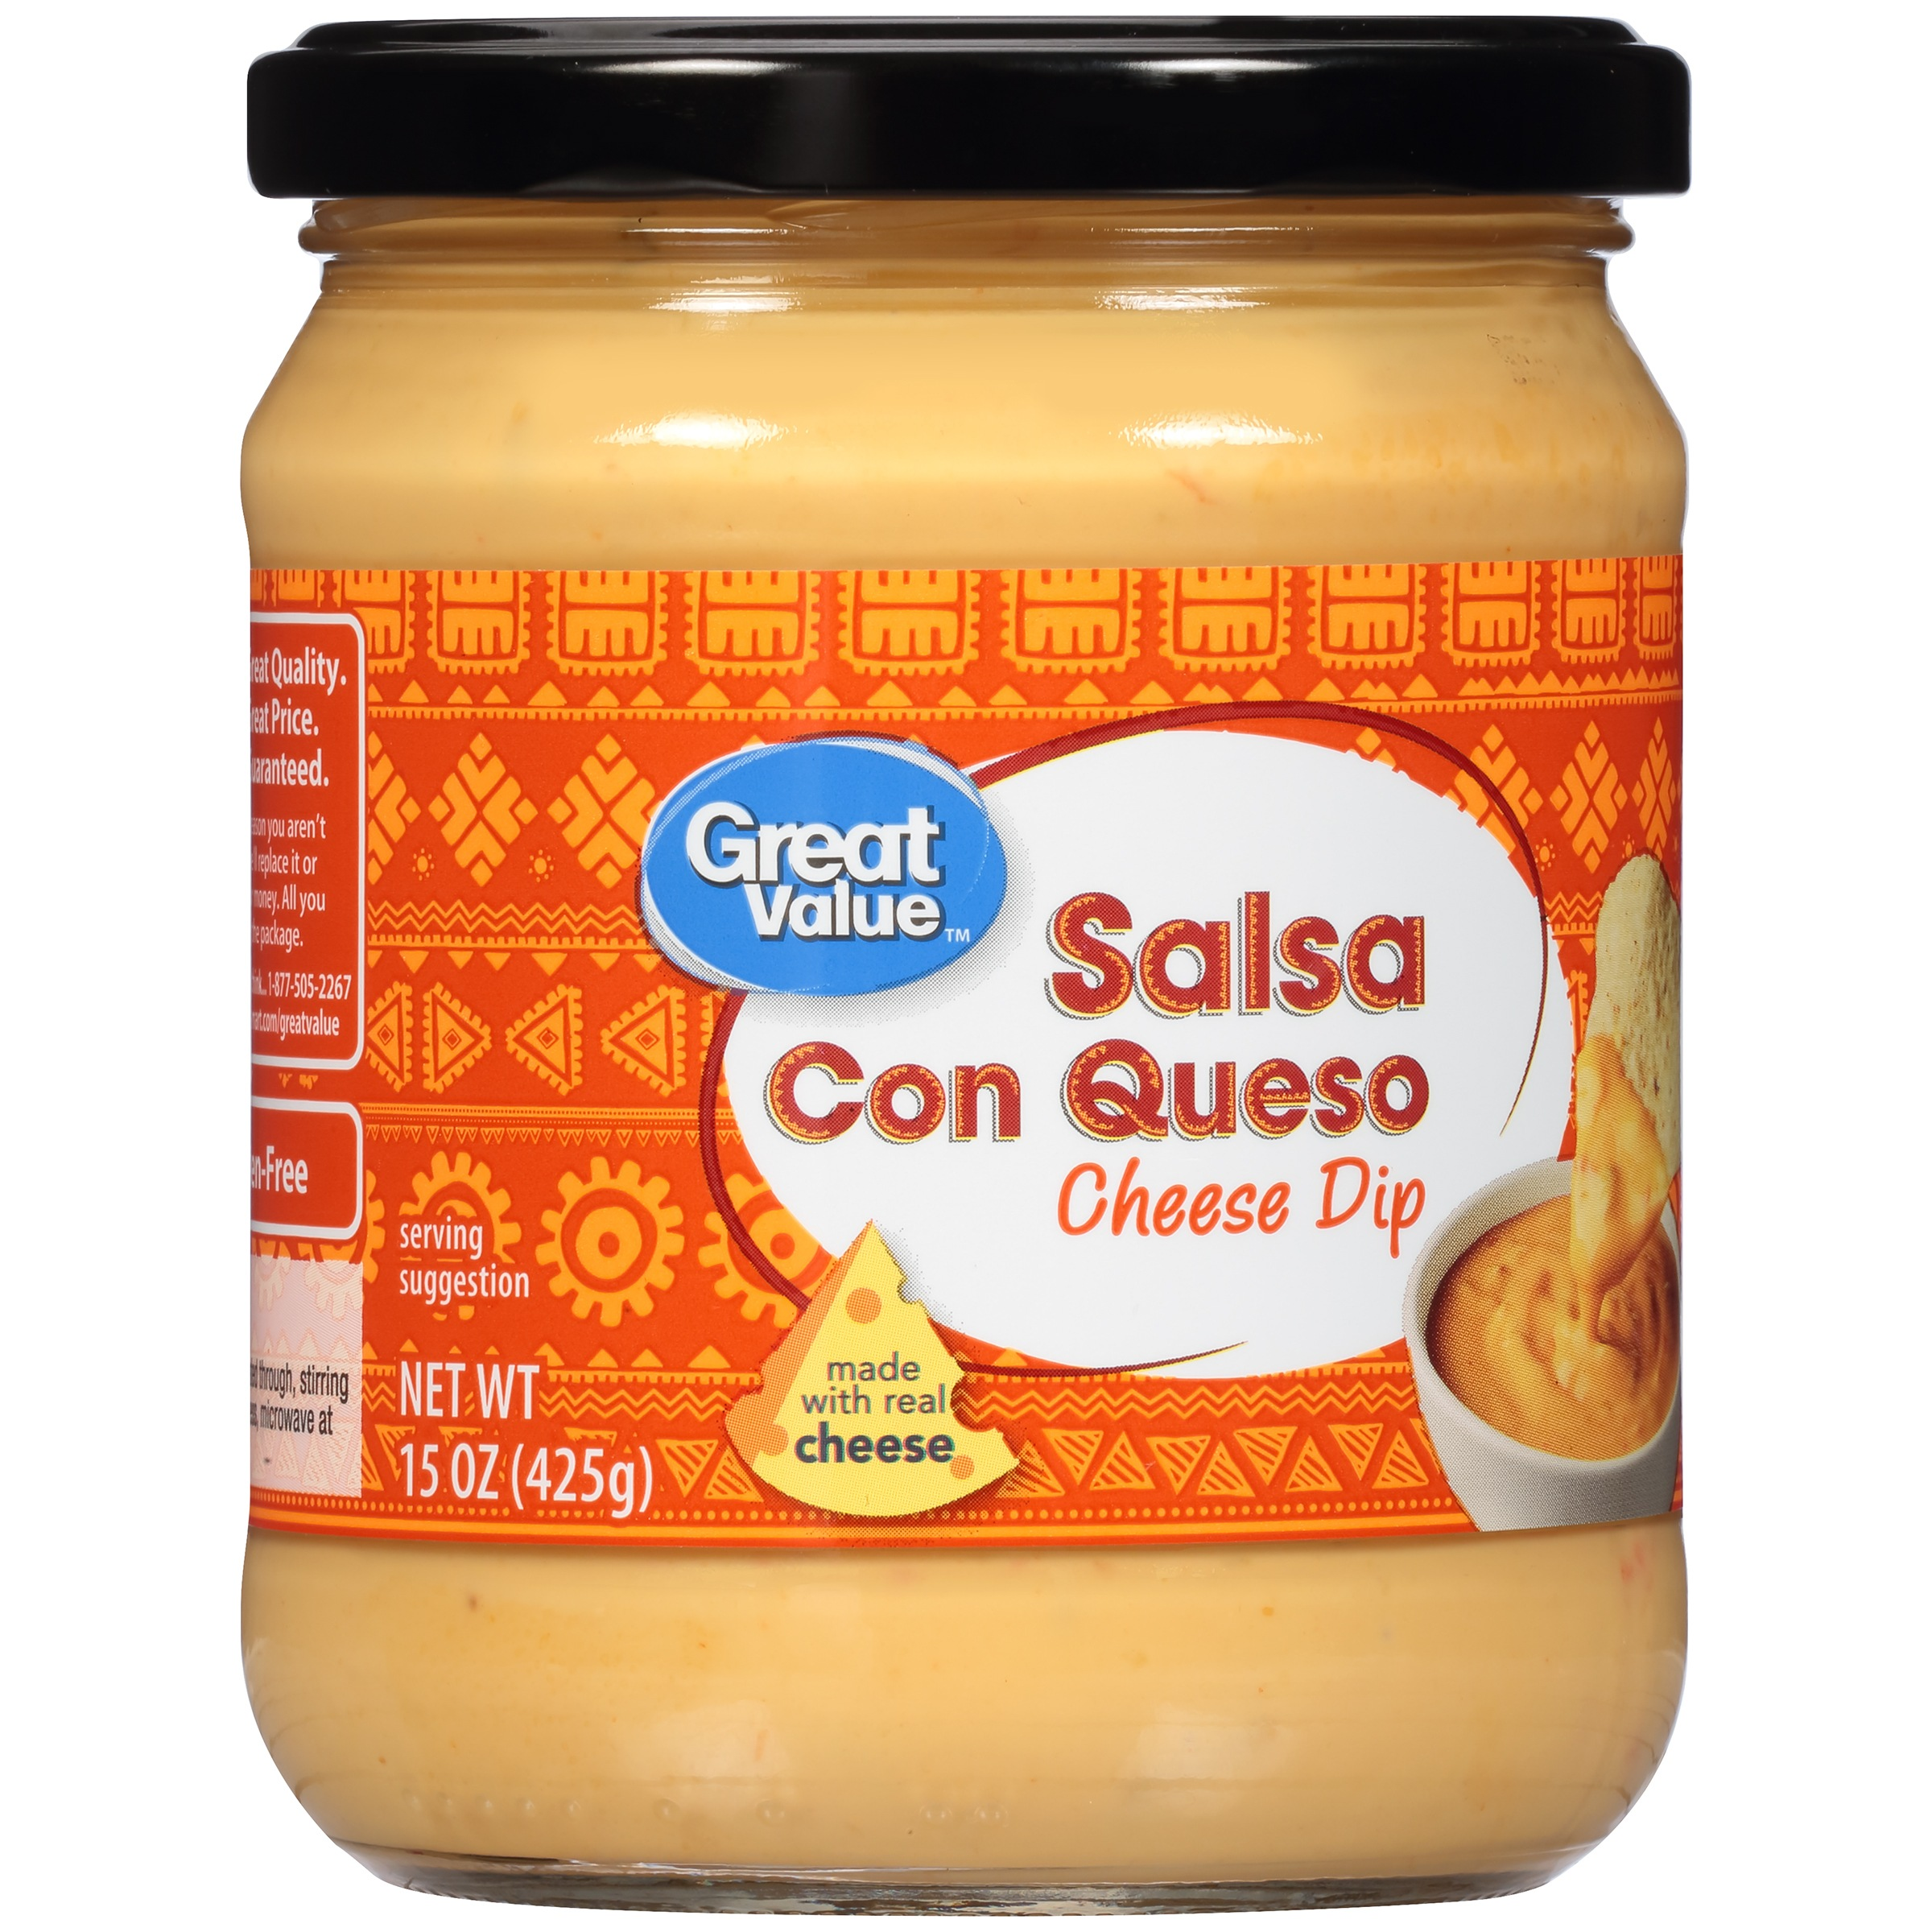 Great Value Salsa Con Queso Cheese Dip, 15 oz